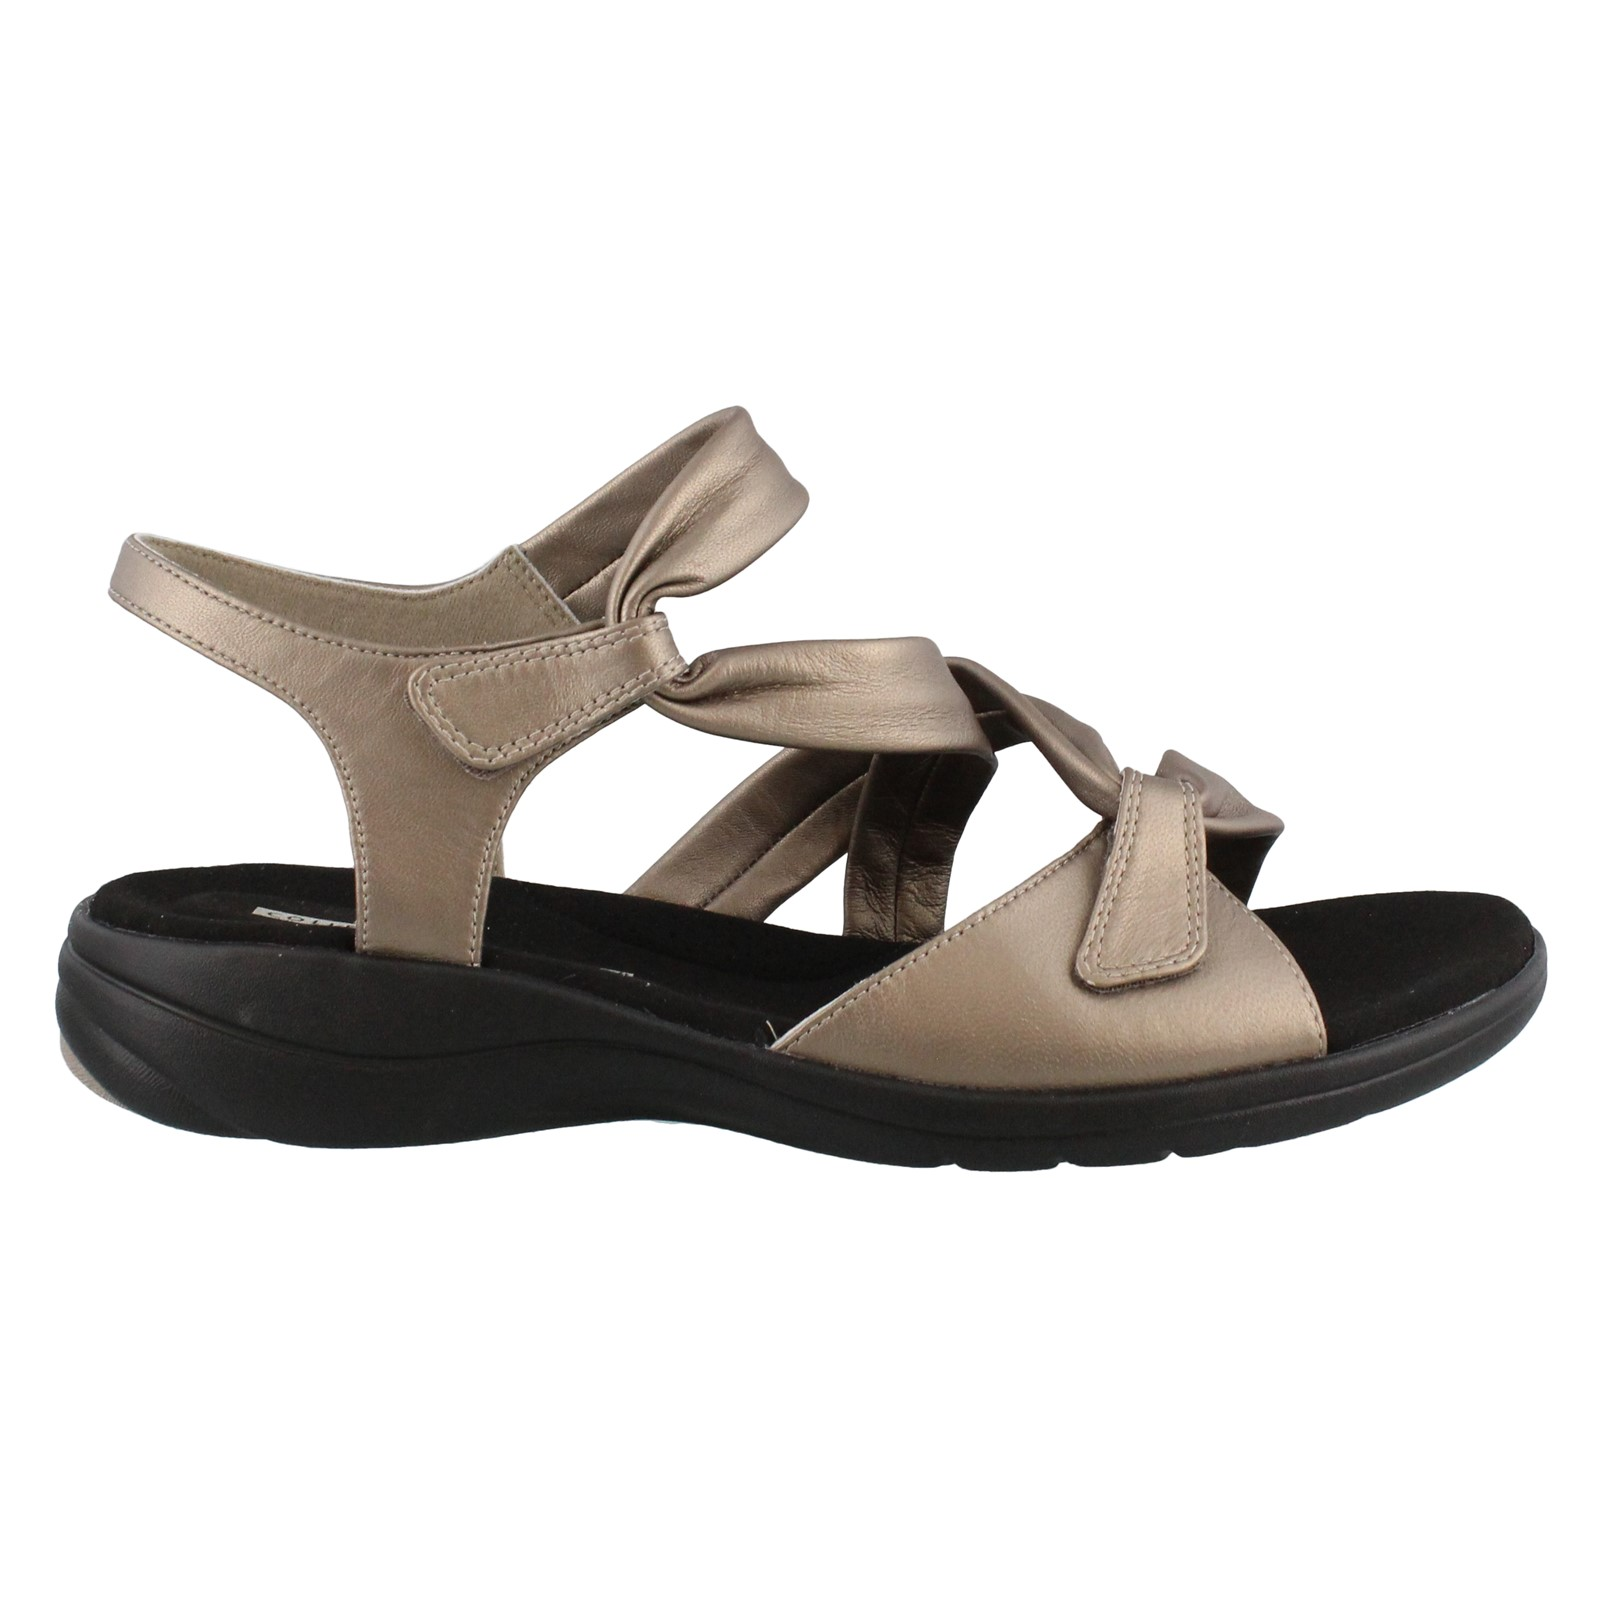 Women's Clarks, Saylie Moon Sandals